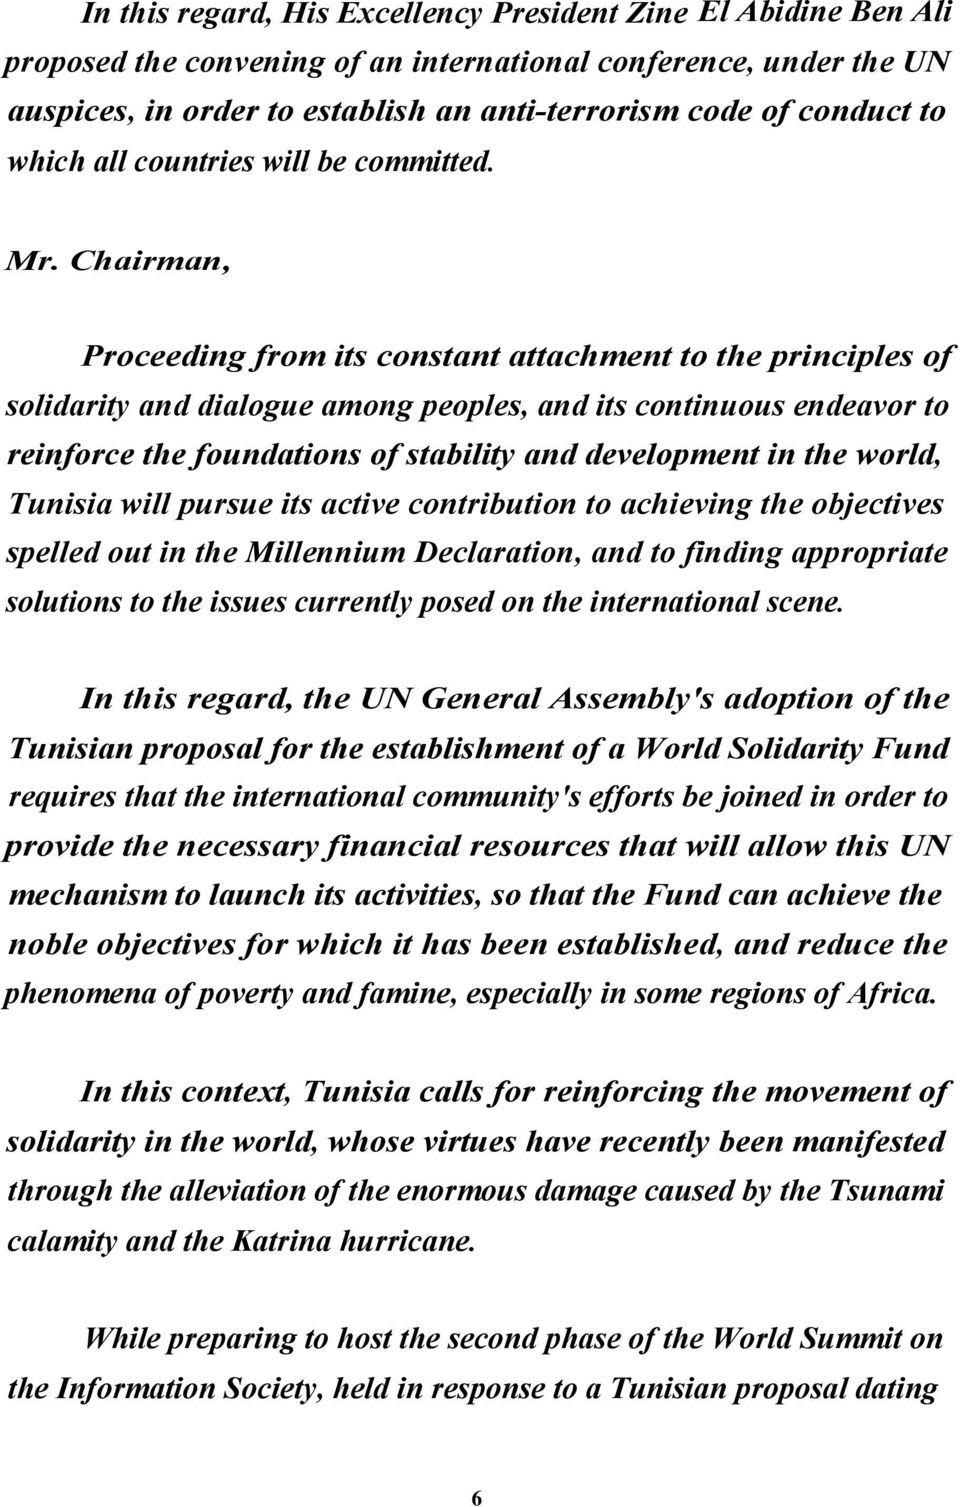 Proceeding from its constant attachment to the principles of solidarity and dialogue among peoples, and its continuous endeavor to reinforce the foundations of stability and development in the world,